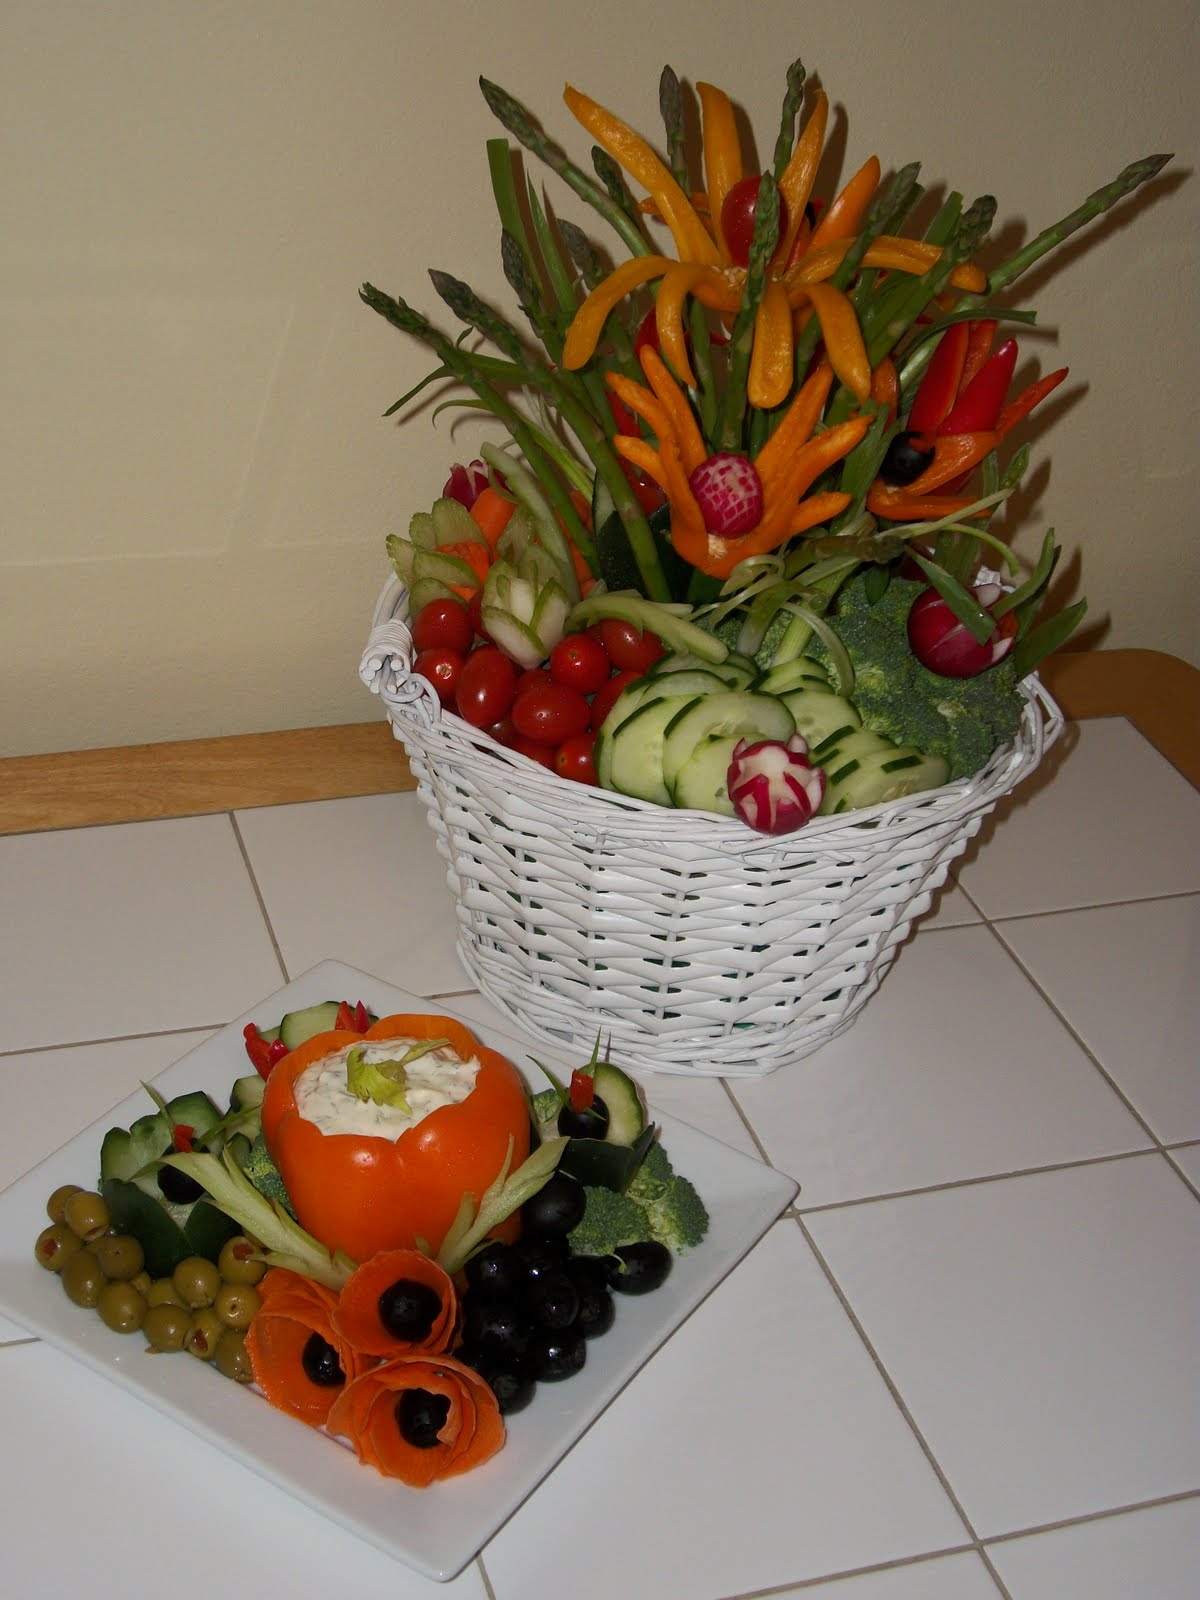 Fruit carving vegetable garnishes and edible